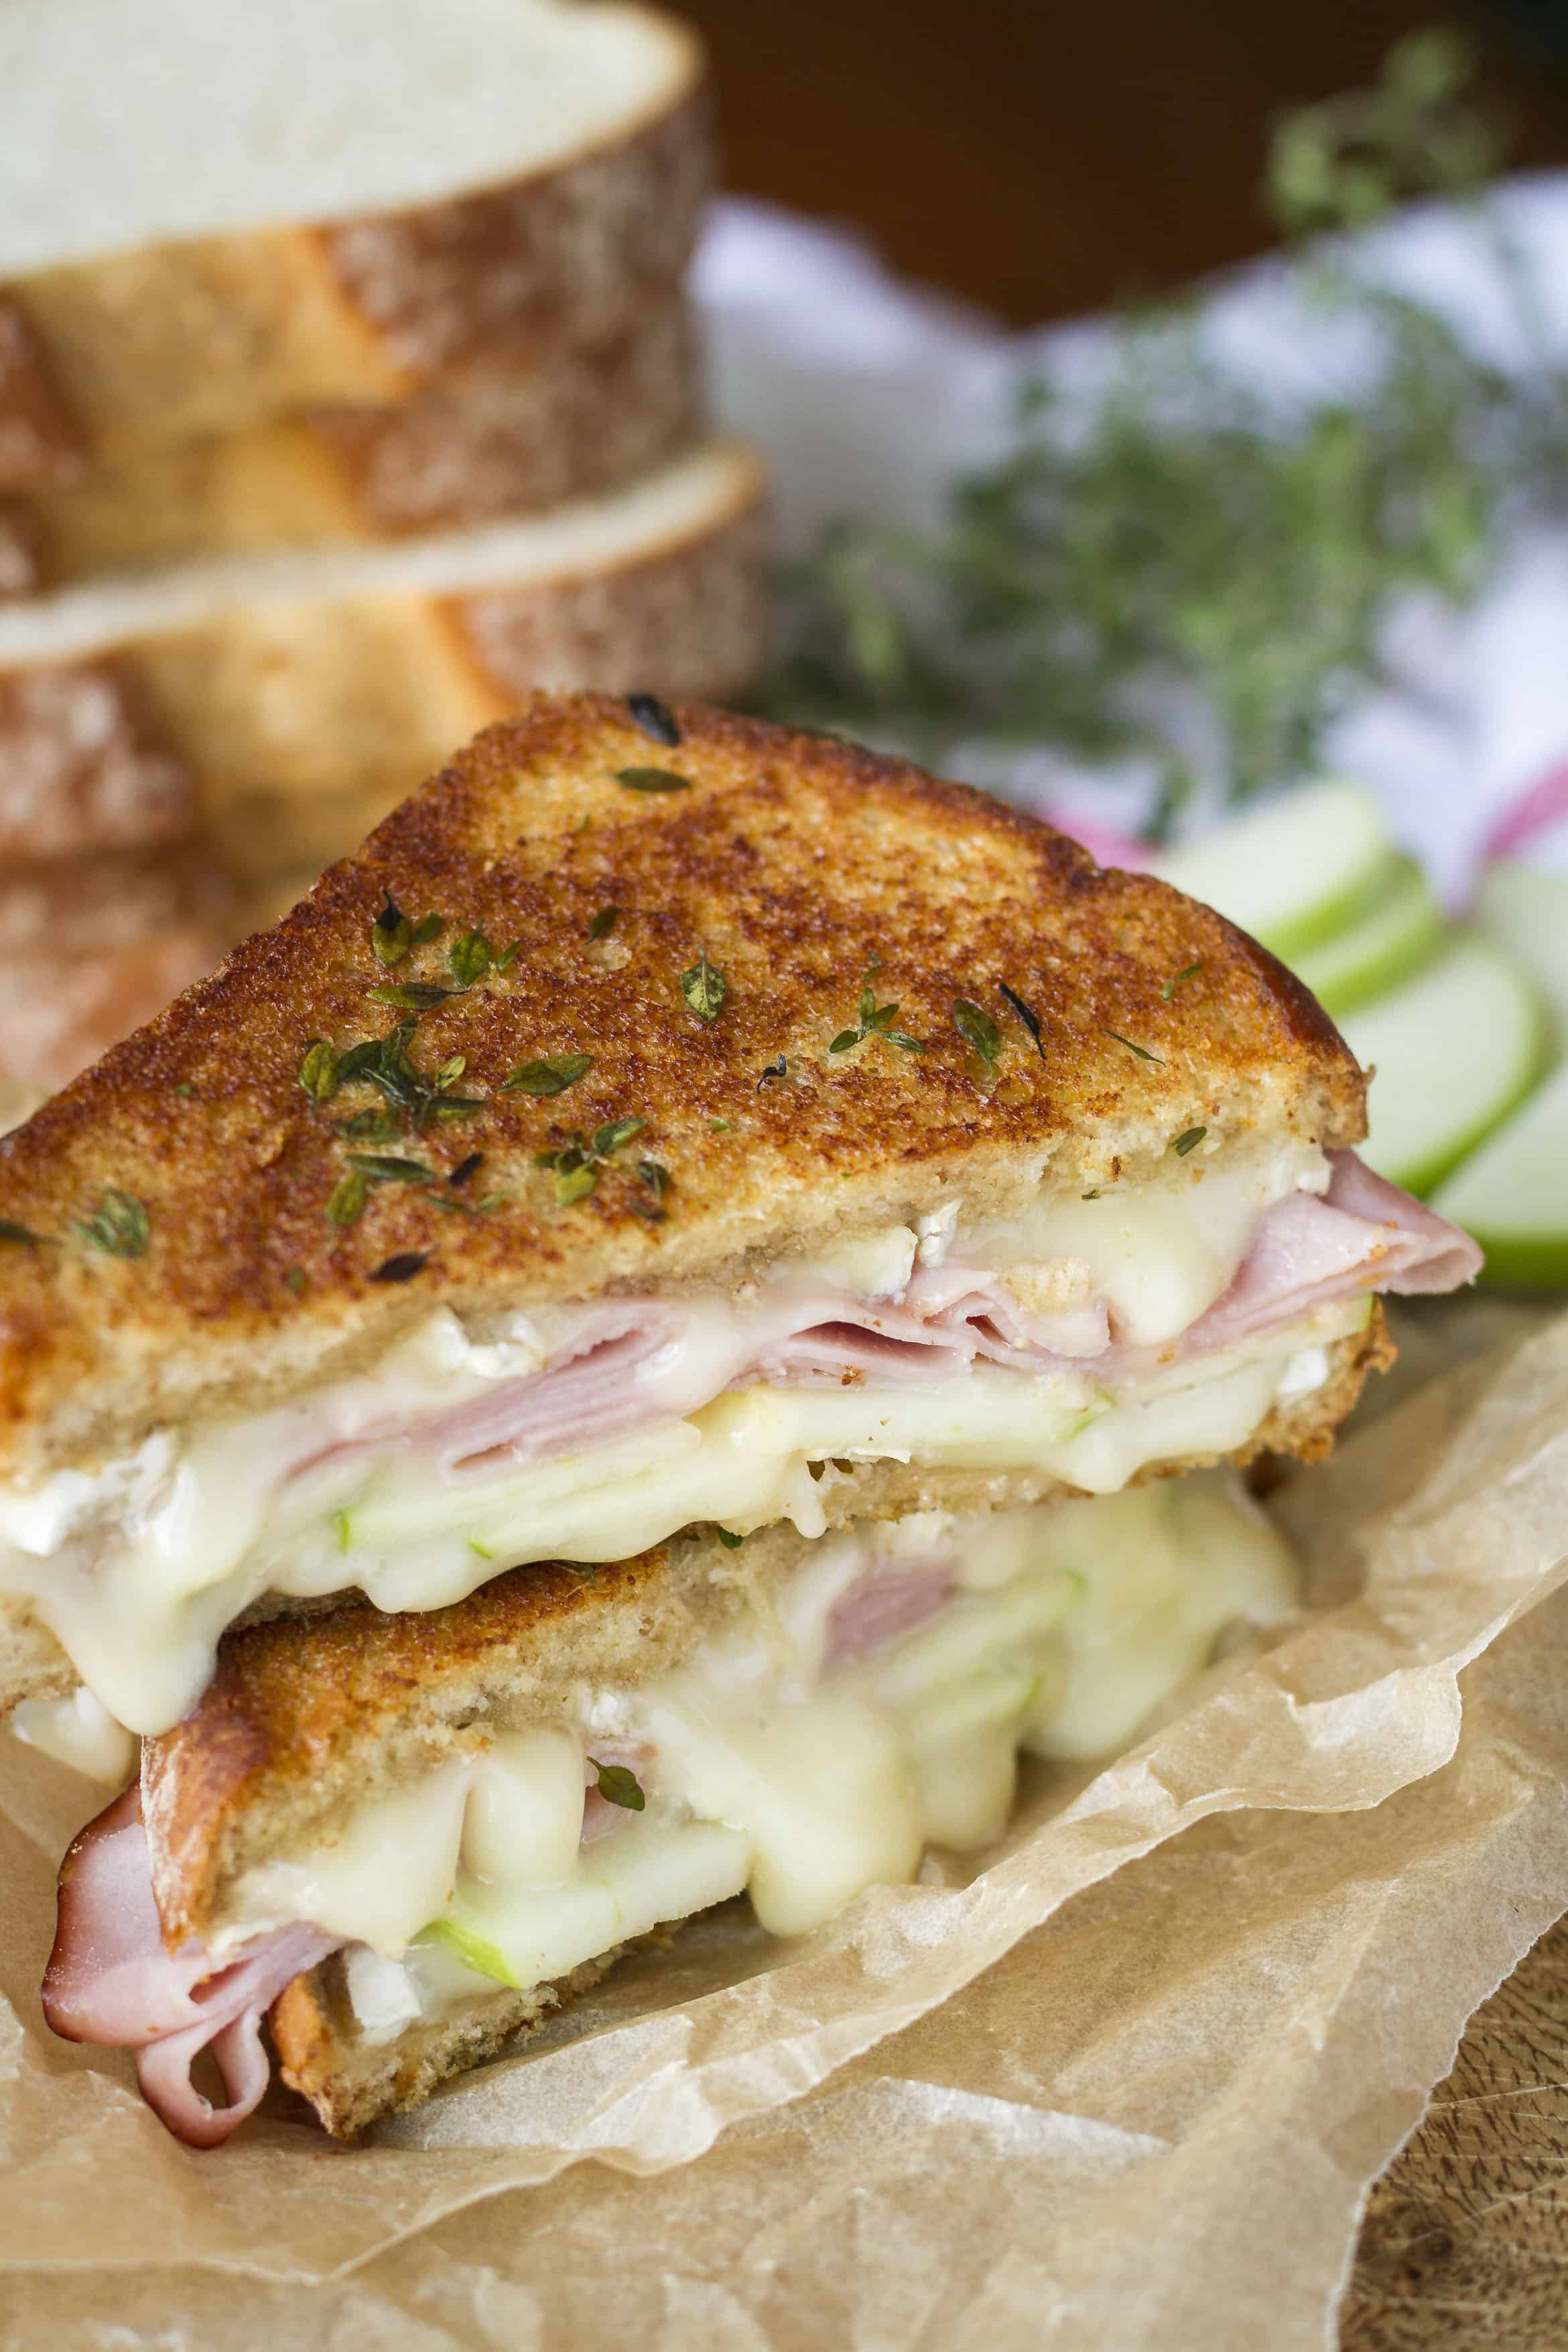 Apple Ham & Brie Grilled Cheese -- this decadent grilled cheese is packed with flavor! Thick bread slathered in fresh thyme butter and filled with green apples, smoked ham, and brie cheese, all drizzled with a touch of honey… | brie grilled cheese | apple brie grilled cheese | honey brie grilled cheese | brie grilled cheese recipe | find the recipe on unsophisticook.com